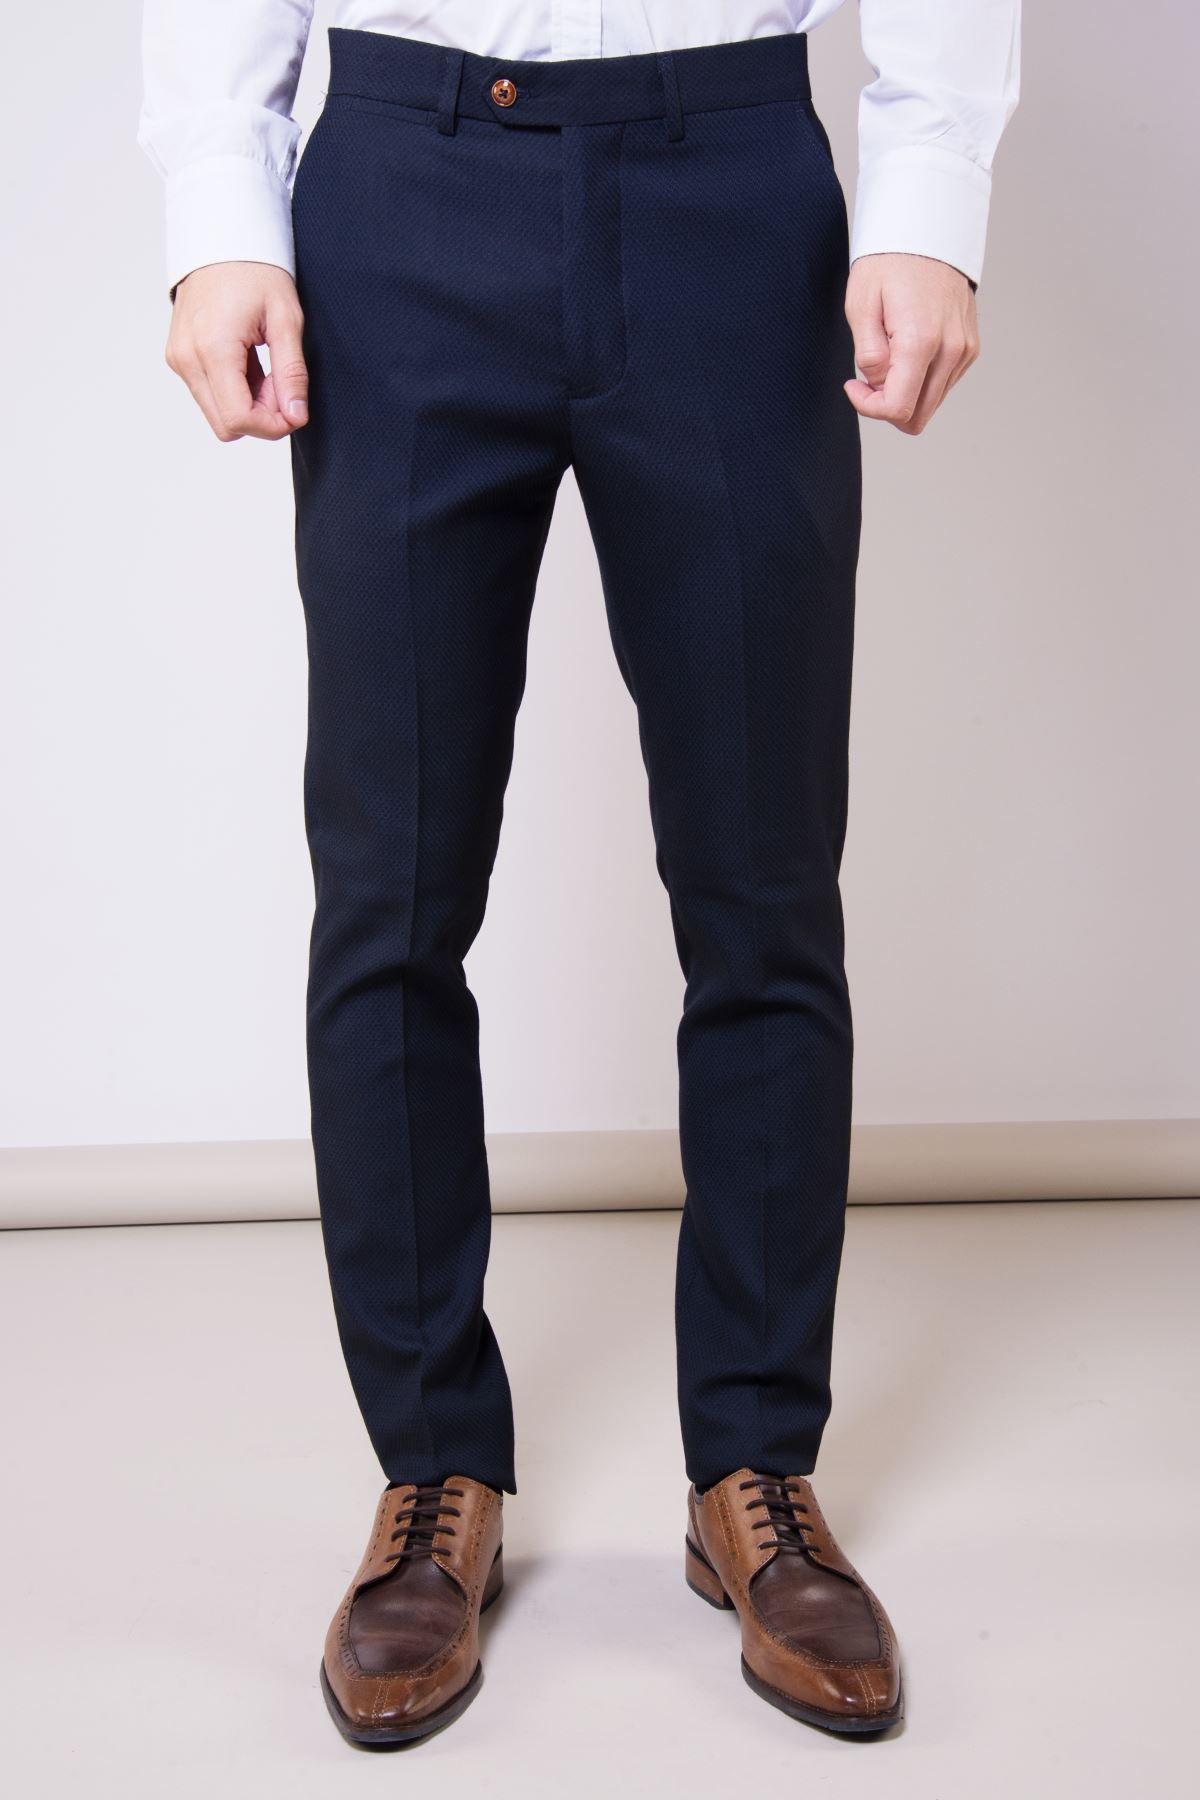 Mens Marc Darcy Navy Trouser Formal Tailored Slim Fit Work Office Dress Pants